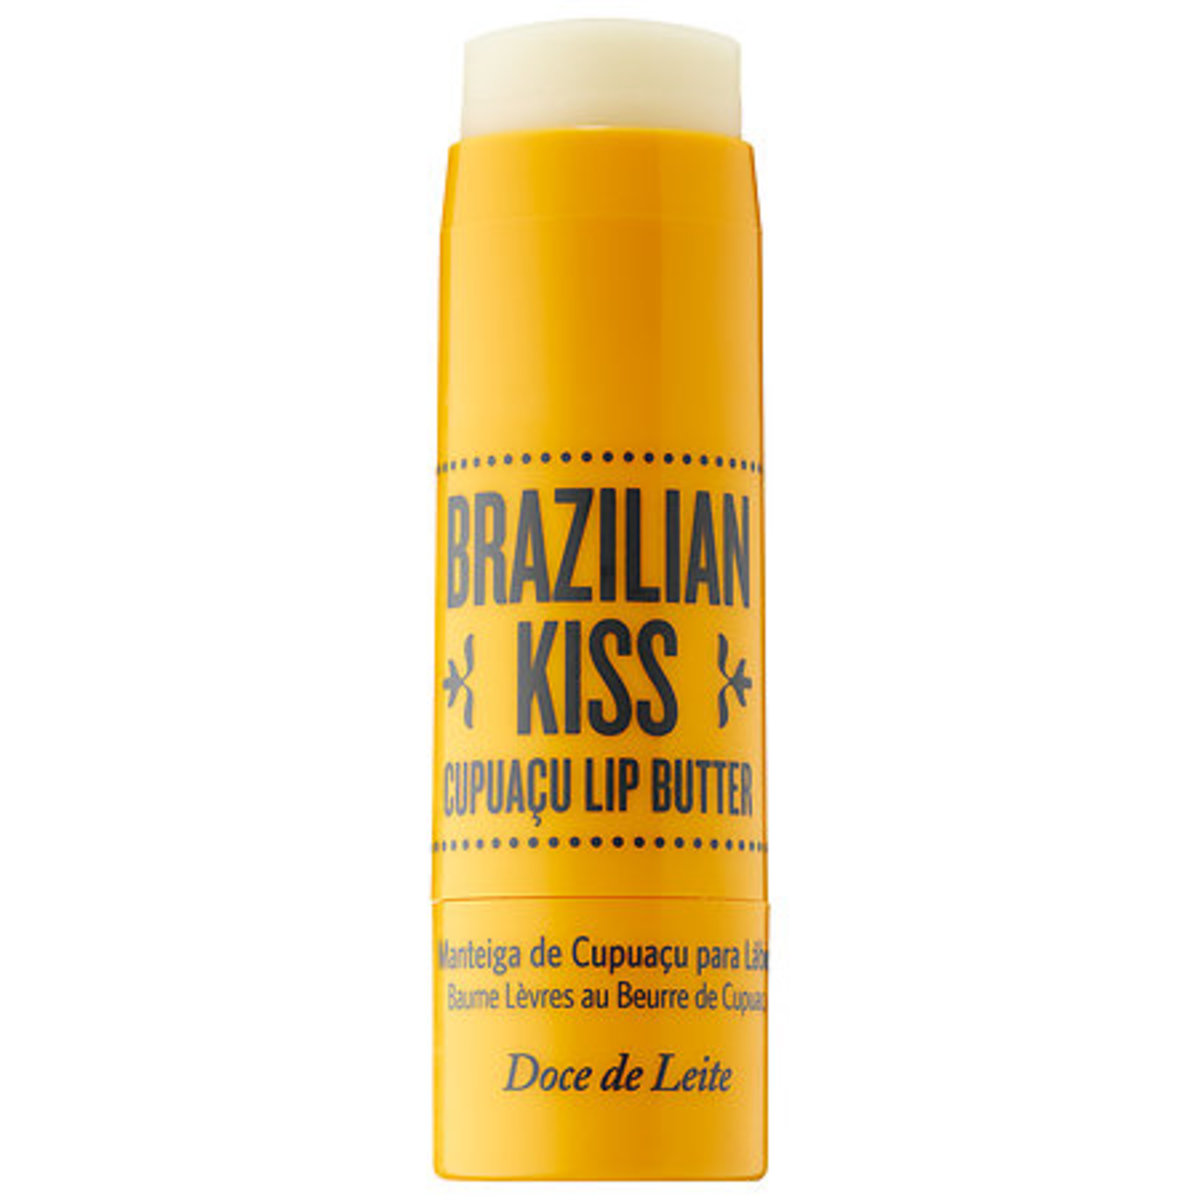 Sol de Janeiro Brazilian Kiss Cupuaçu Lip Butter, $18, available at Sephora. Photo: Courtesy of Sol de Janeiro